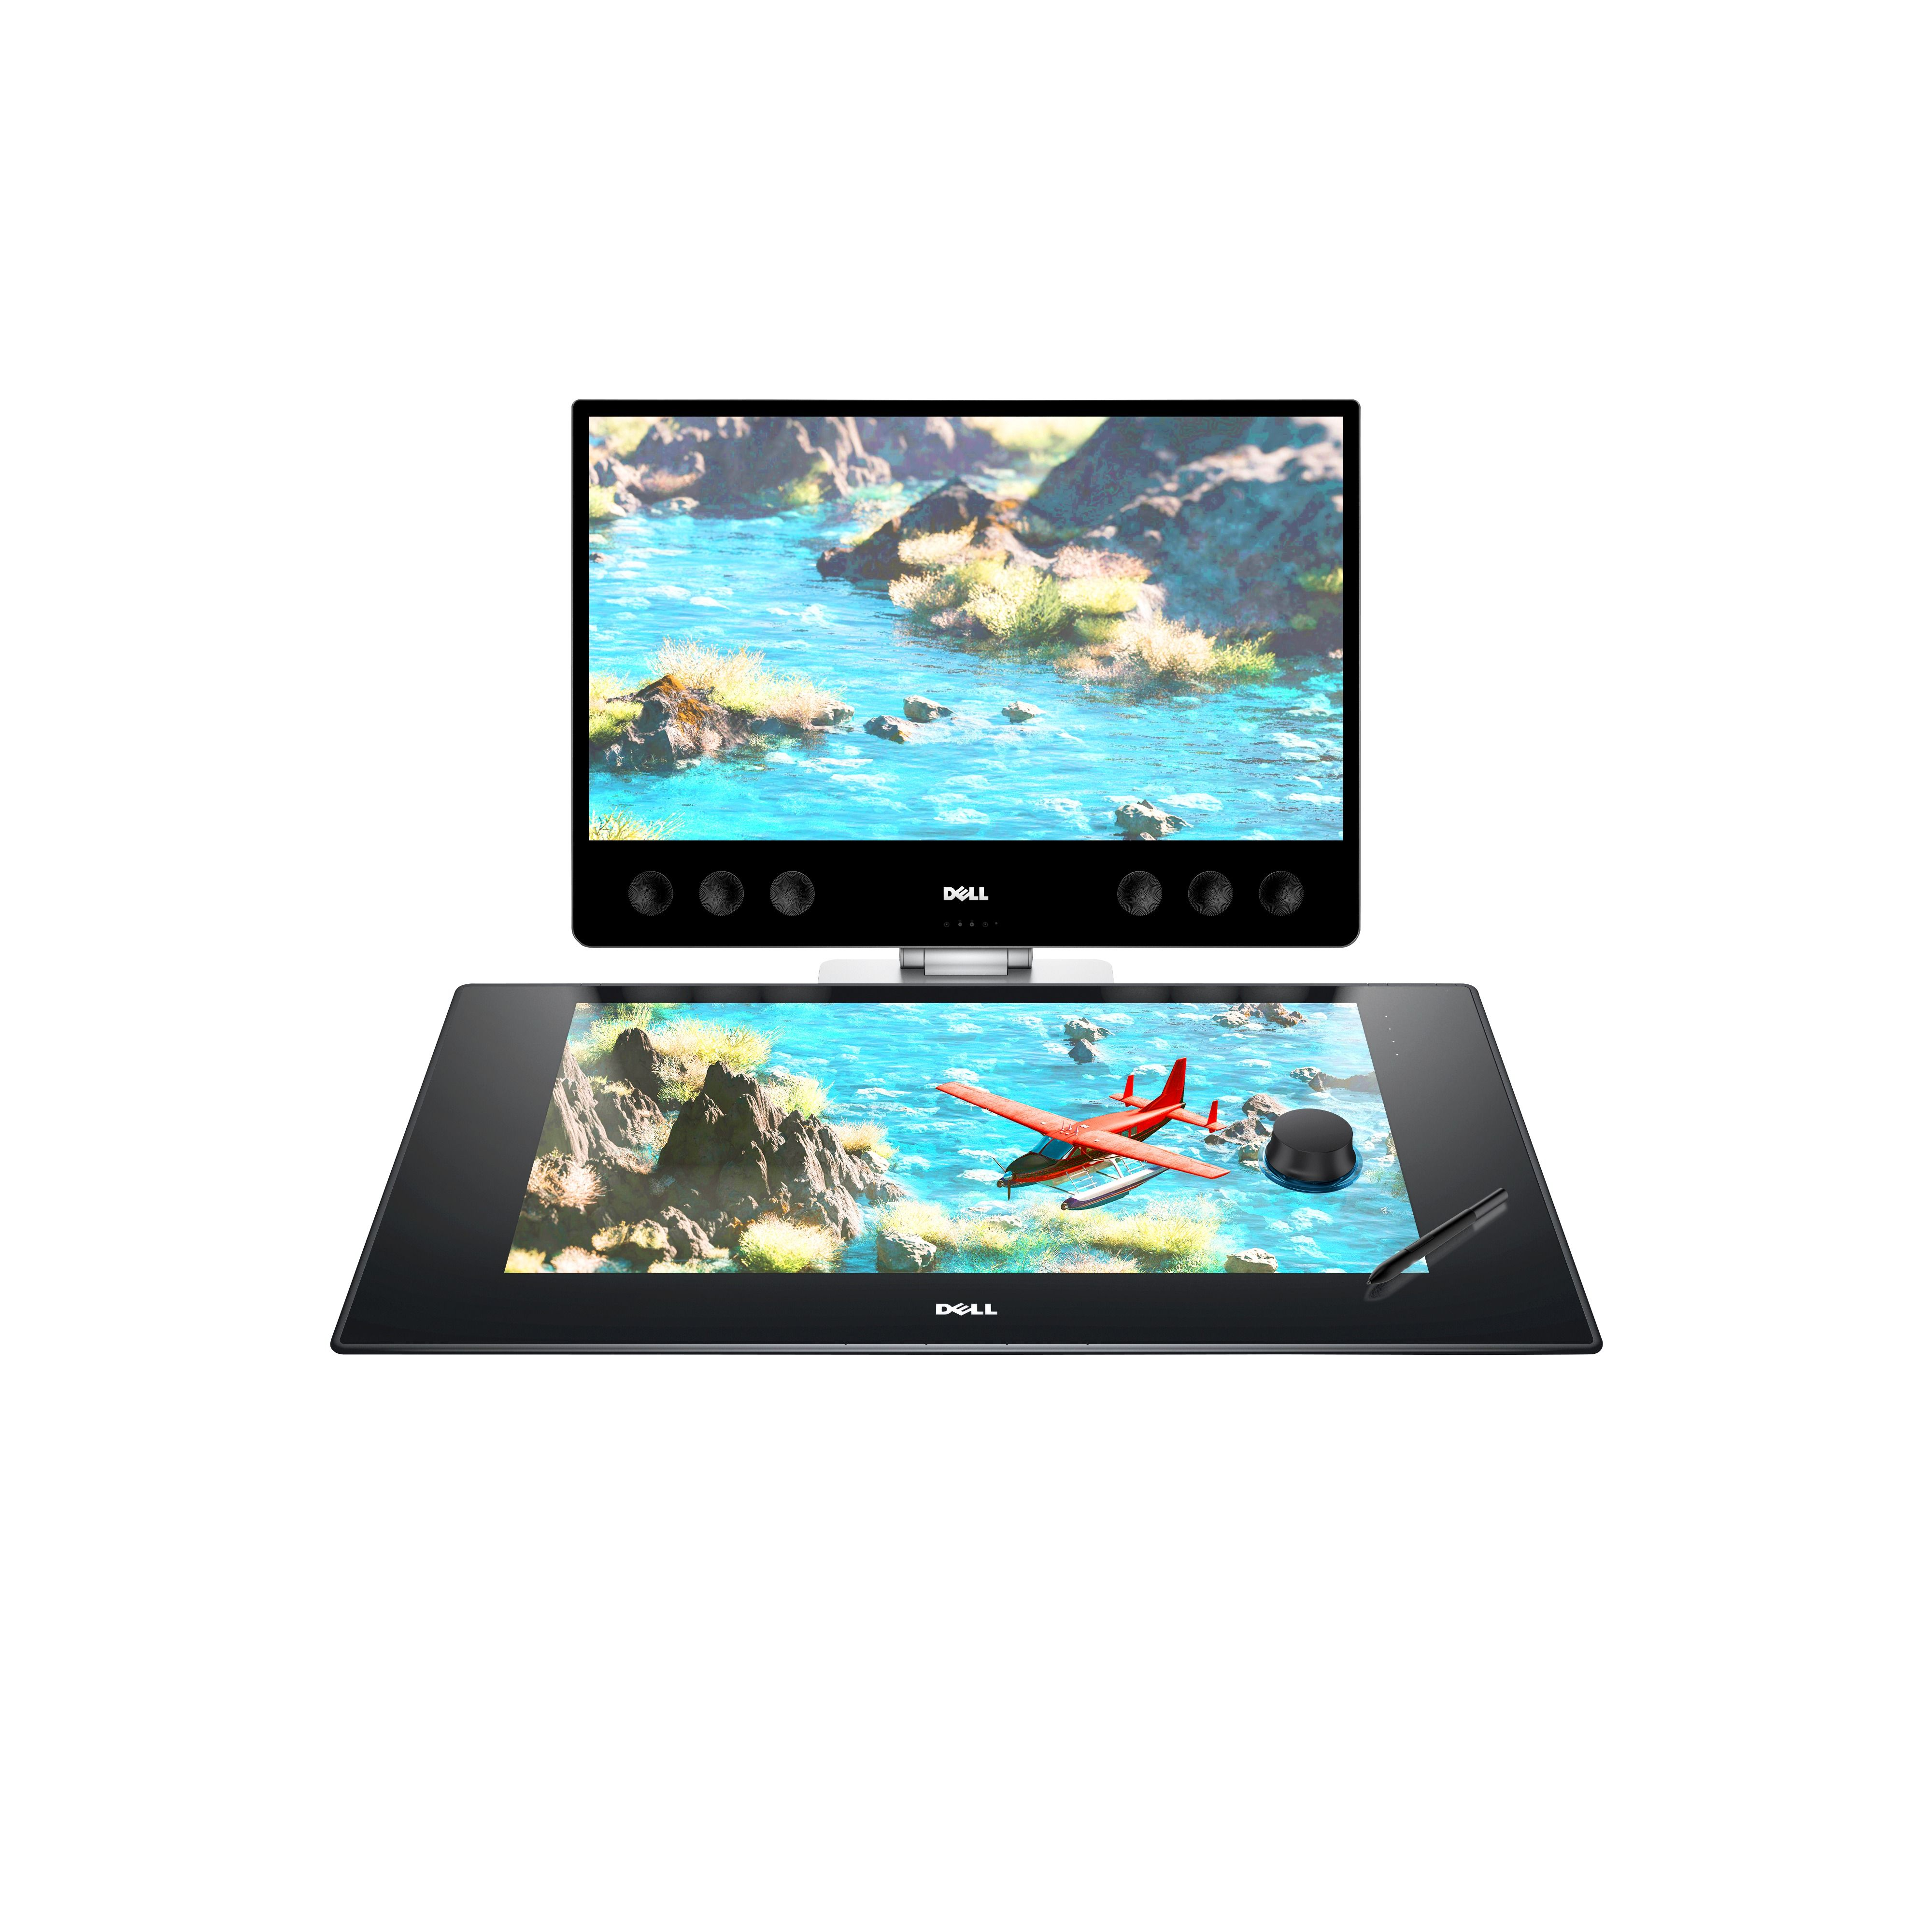 """<p>Trash cans filled with crumpled sketches can't compete against this Dell smart workspace, a 27-inch surface that uses a stylus and dial-like """"totem"""" to turn your visions into reality.&nbsp&#x3B;</p><p><em data-redactor-tag=""""em"""" data-verified=""""redactor"""">Dell, $1,799</em></p><p><strong data-redactor-tag=""""strong"""" data-verified=""""redactor"""">BUY IT: <a href=""""http://www.dell.com/en-us/work/shop/workstations-isv-certified-dell/dell-canvas-27/spd/dell-canvas-kv2718d/s001pdc27us"""" target=""""_blank"""" data-tracking-id=""""recirc-text-link"""">dell.com</a>.</strong></p>"""